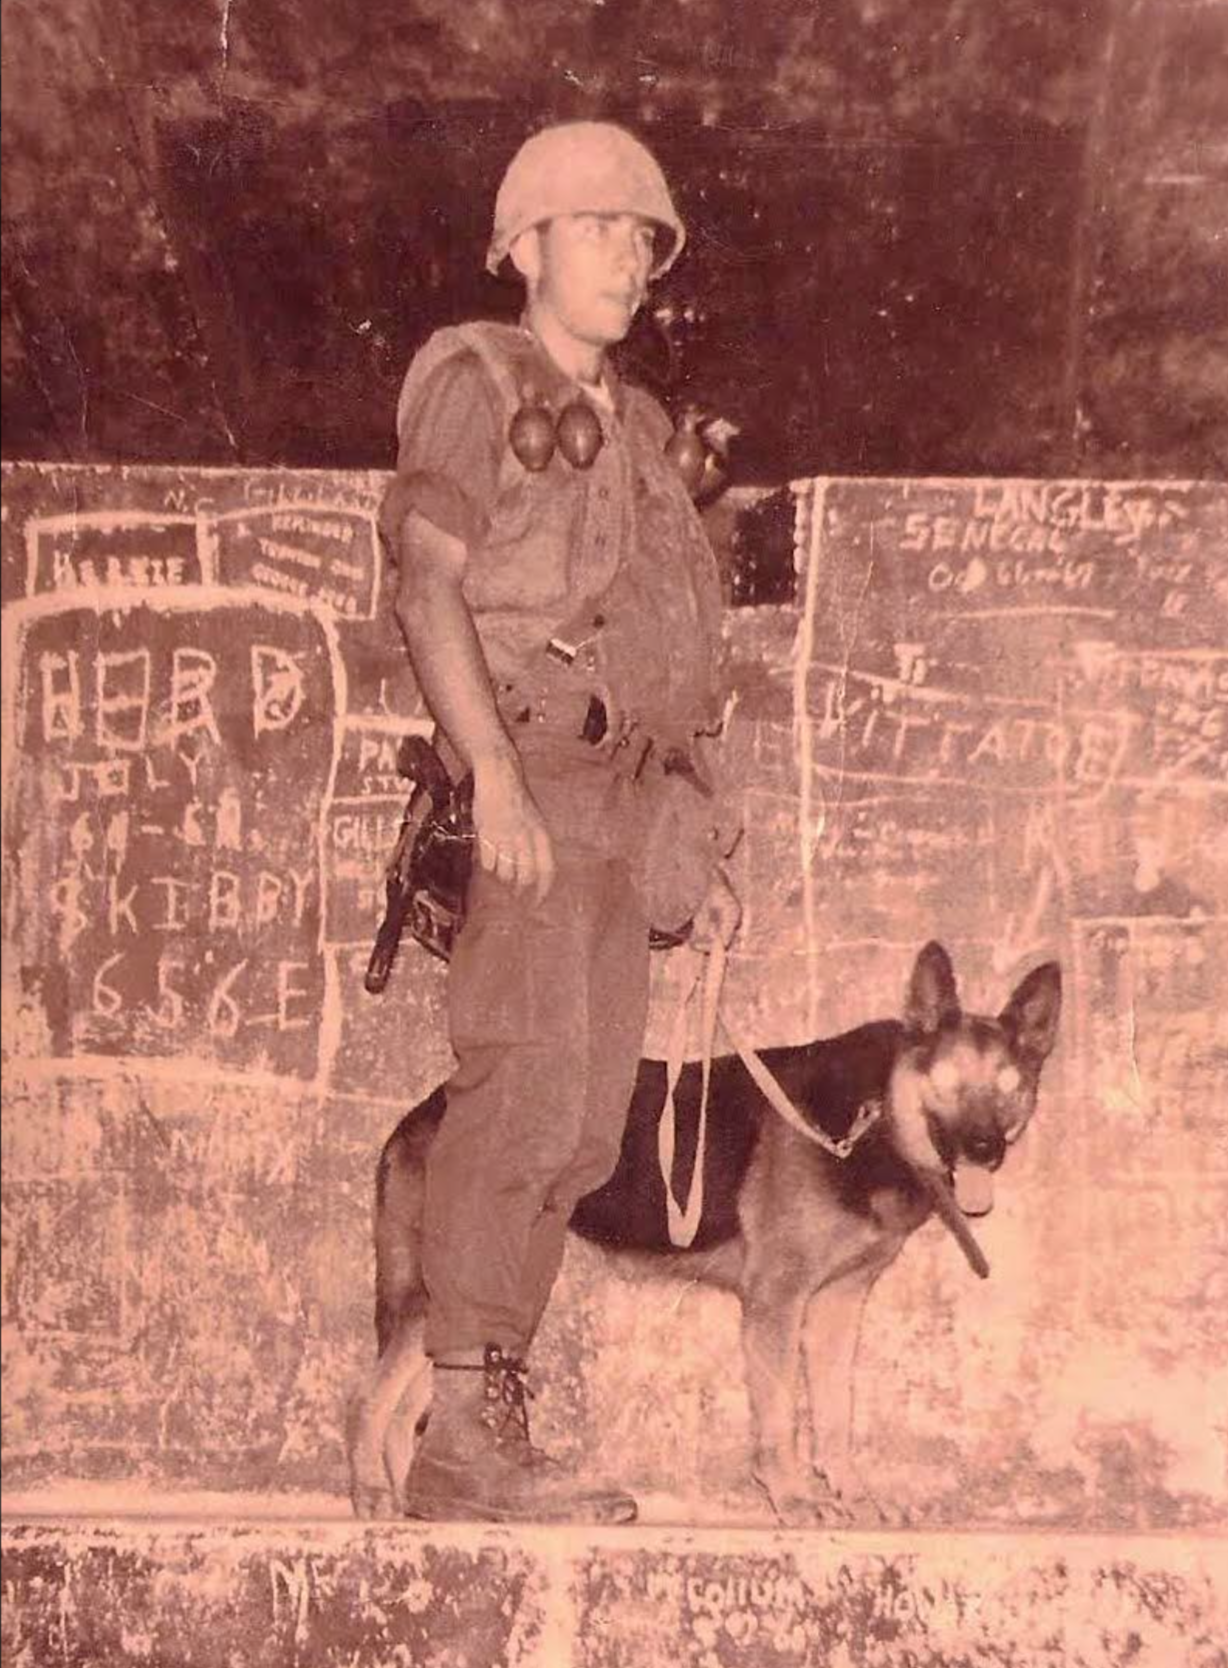 Airman John Langley of Venice, Fla. and his guard-dog 'Vogie' took on NVA & VC during Vietnam War